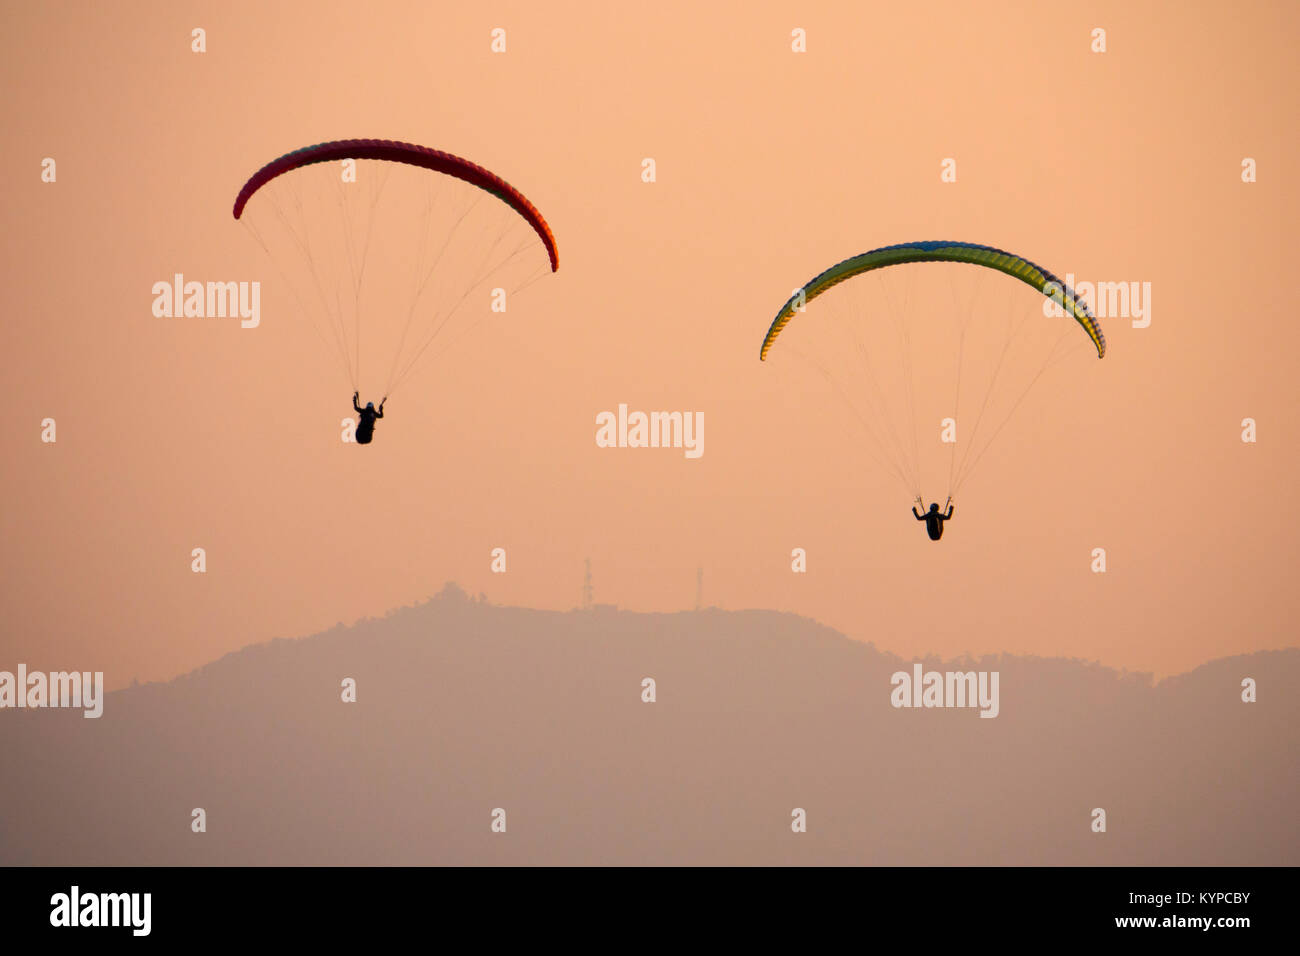 Paragliding at sunset in Pokhara, Nepal - Stock Image